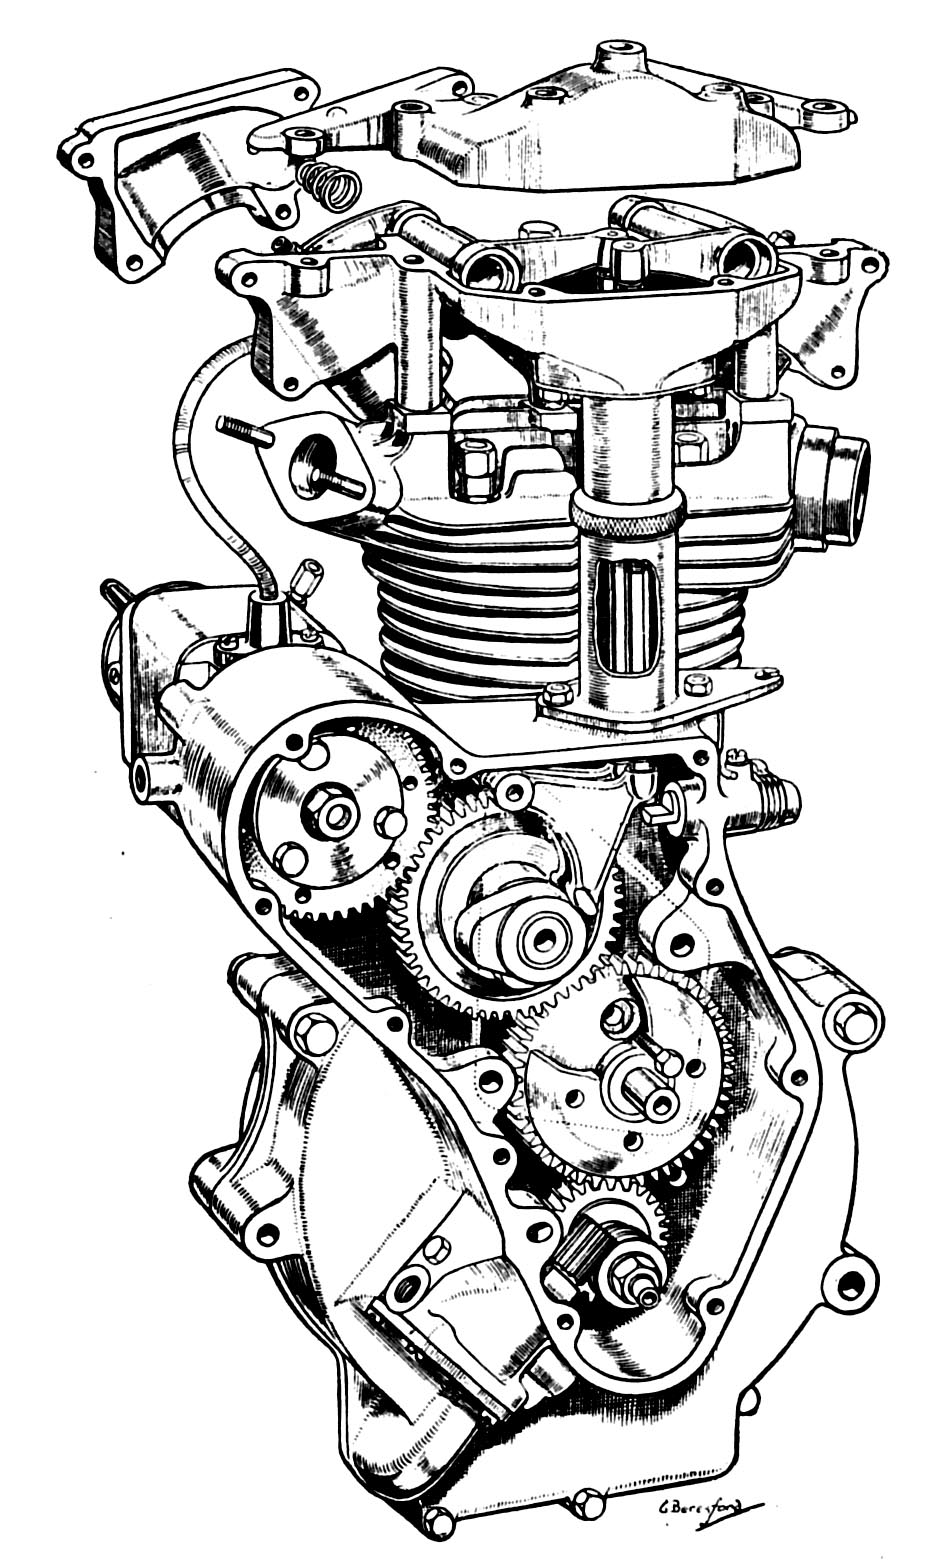 Engine Drawing At Free For Personal Use Motorcycle V Twin Diagram 929x1562 Jap Engines And Blueprints